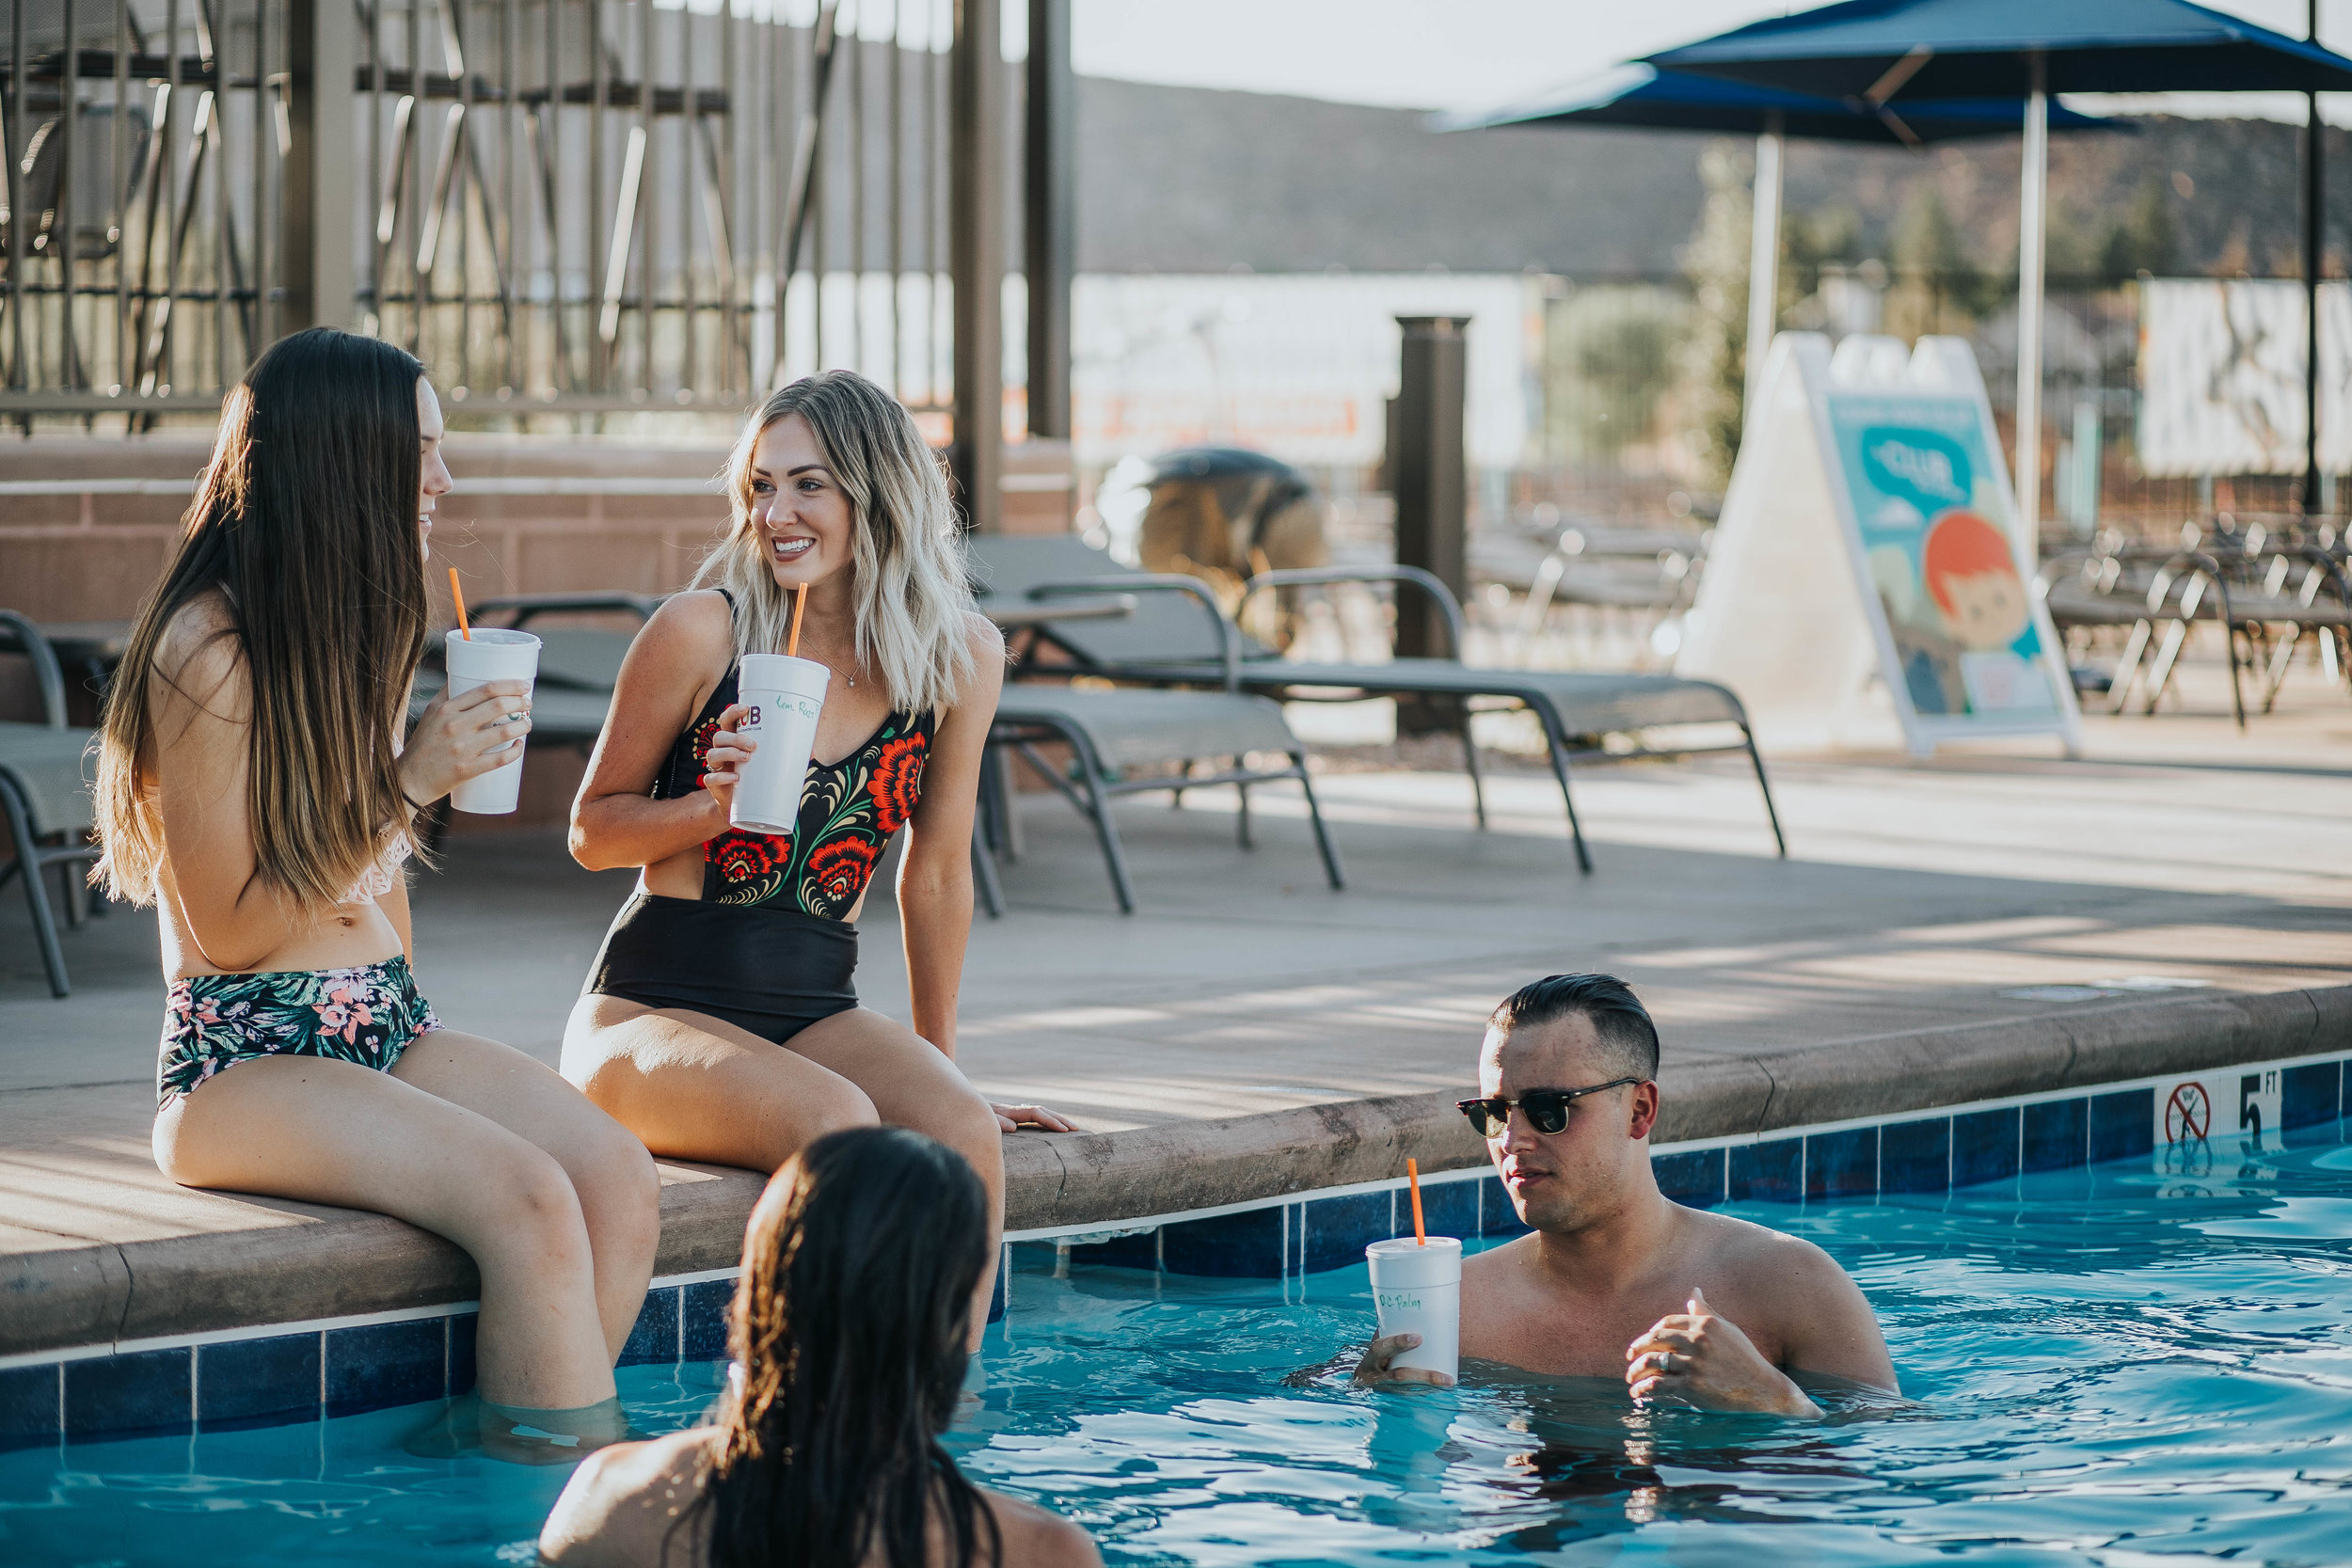 Poolside Service - Order some drinks and have them served to you poolside!